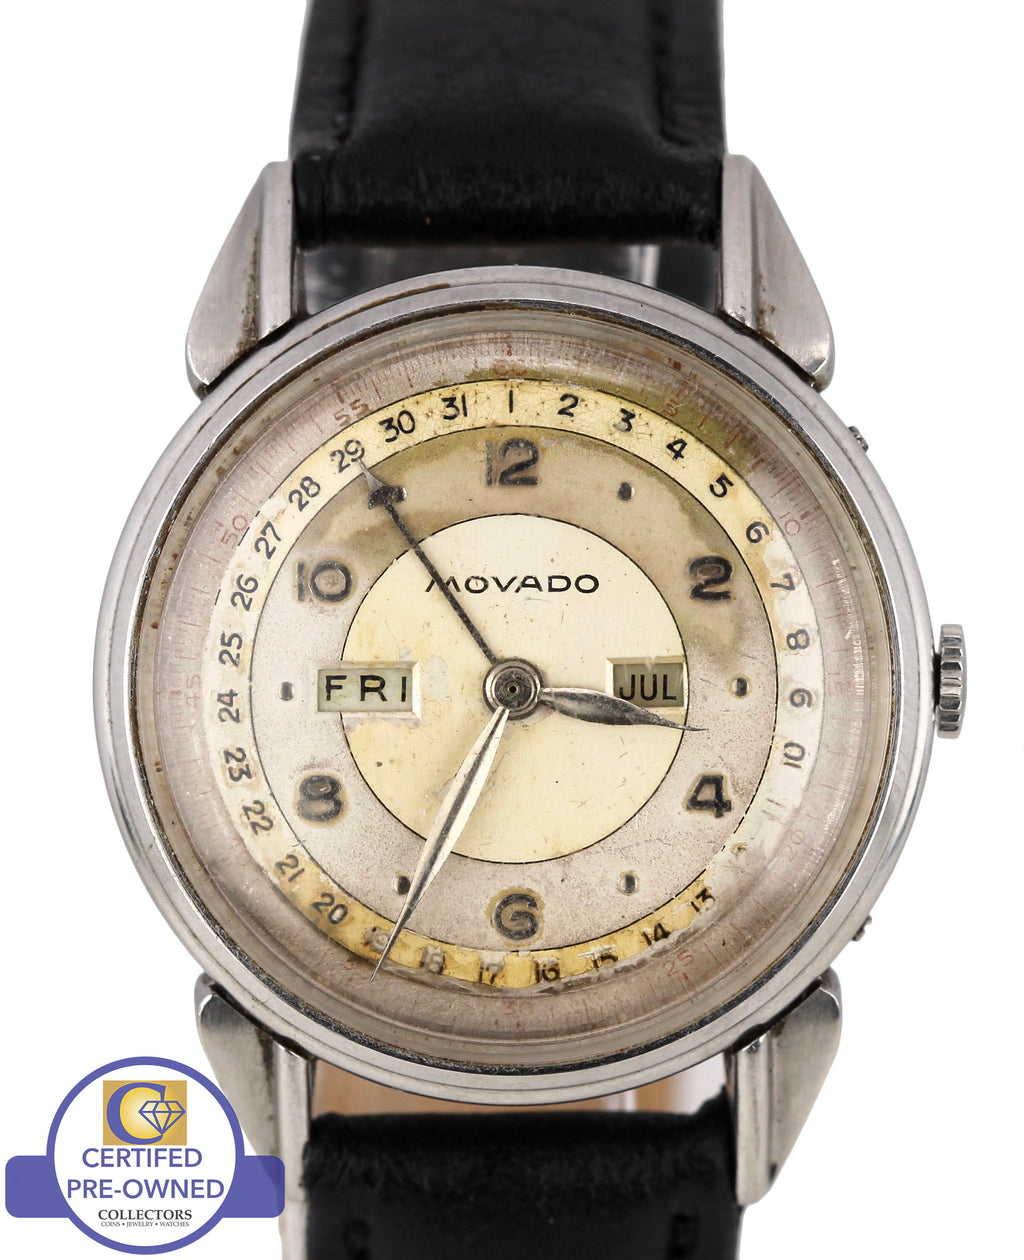 Vintage 1940s Movado Calendograph 14823 Silver Day Date 34mm Stainless Watch